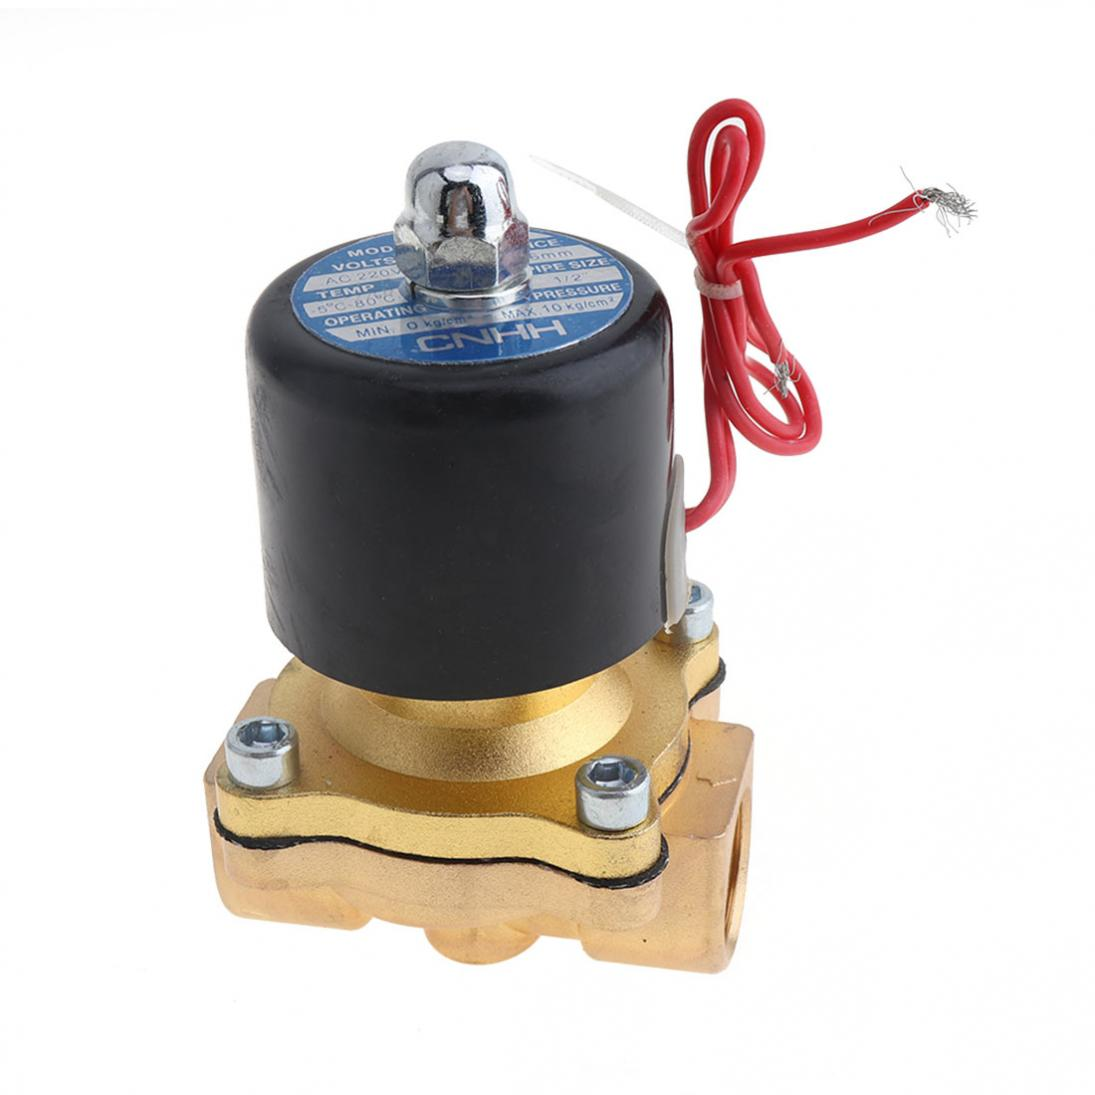 1-2-039-039-DC12-Brass-Electric-Solenoid-Valve-N-C-Gas-Water-Fuel-Air-Solid-Coil-New thumbnail 11